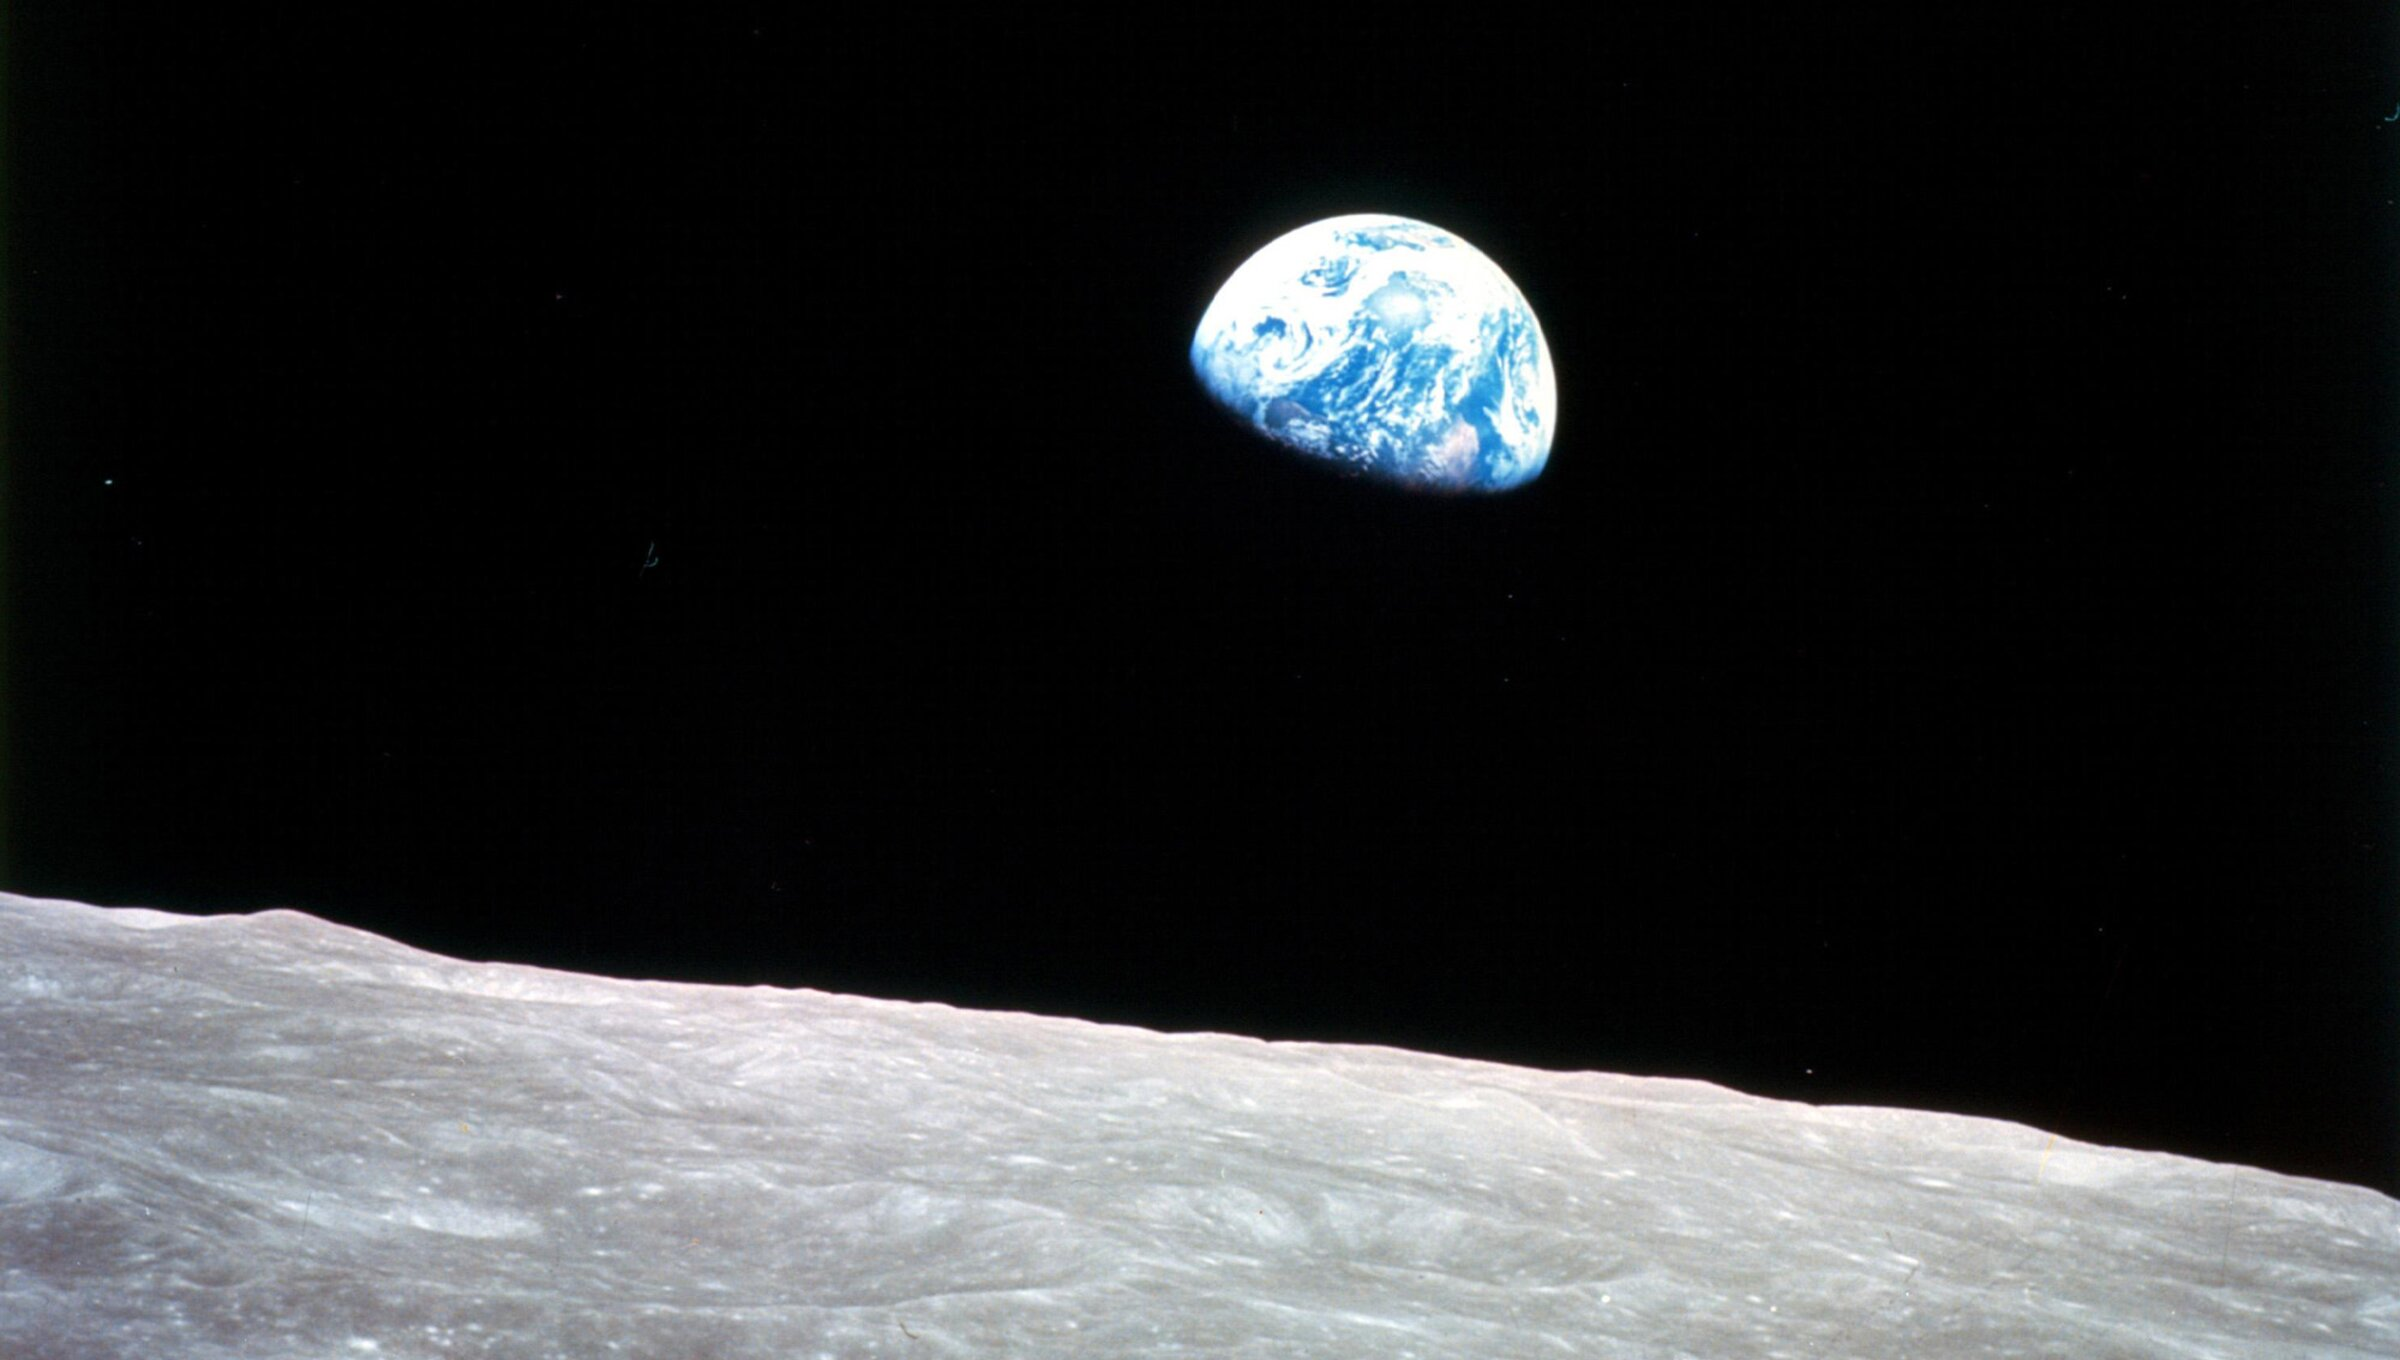 From the astronauts to humanity itself, 'Earthrise' has left an indelible mark | Psyche